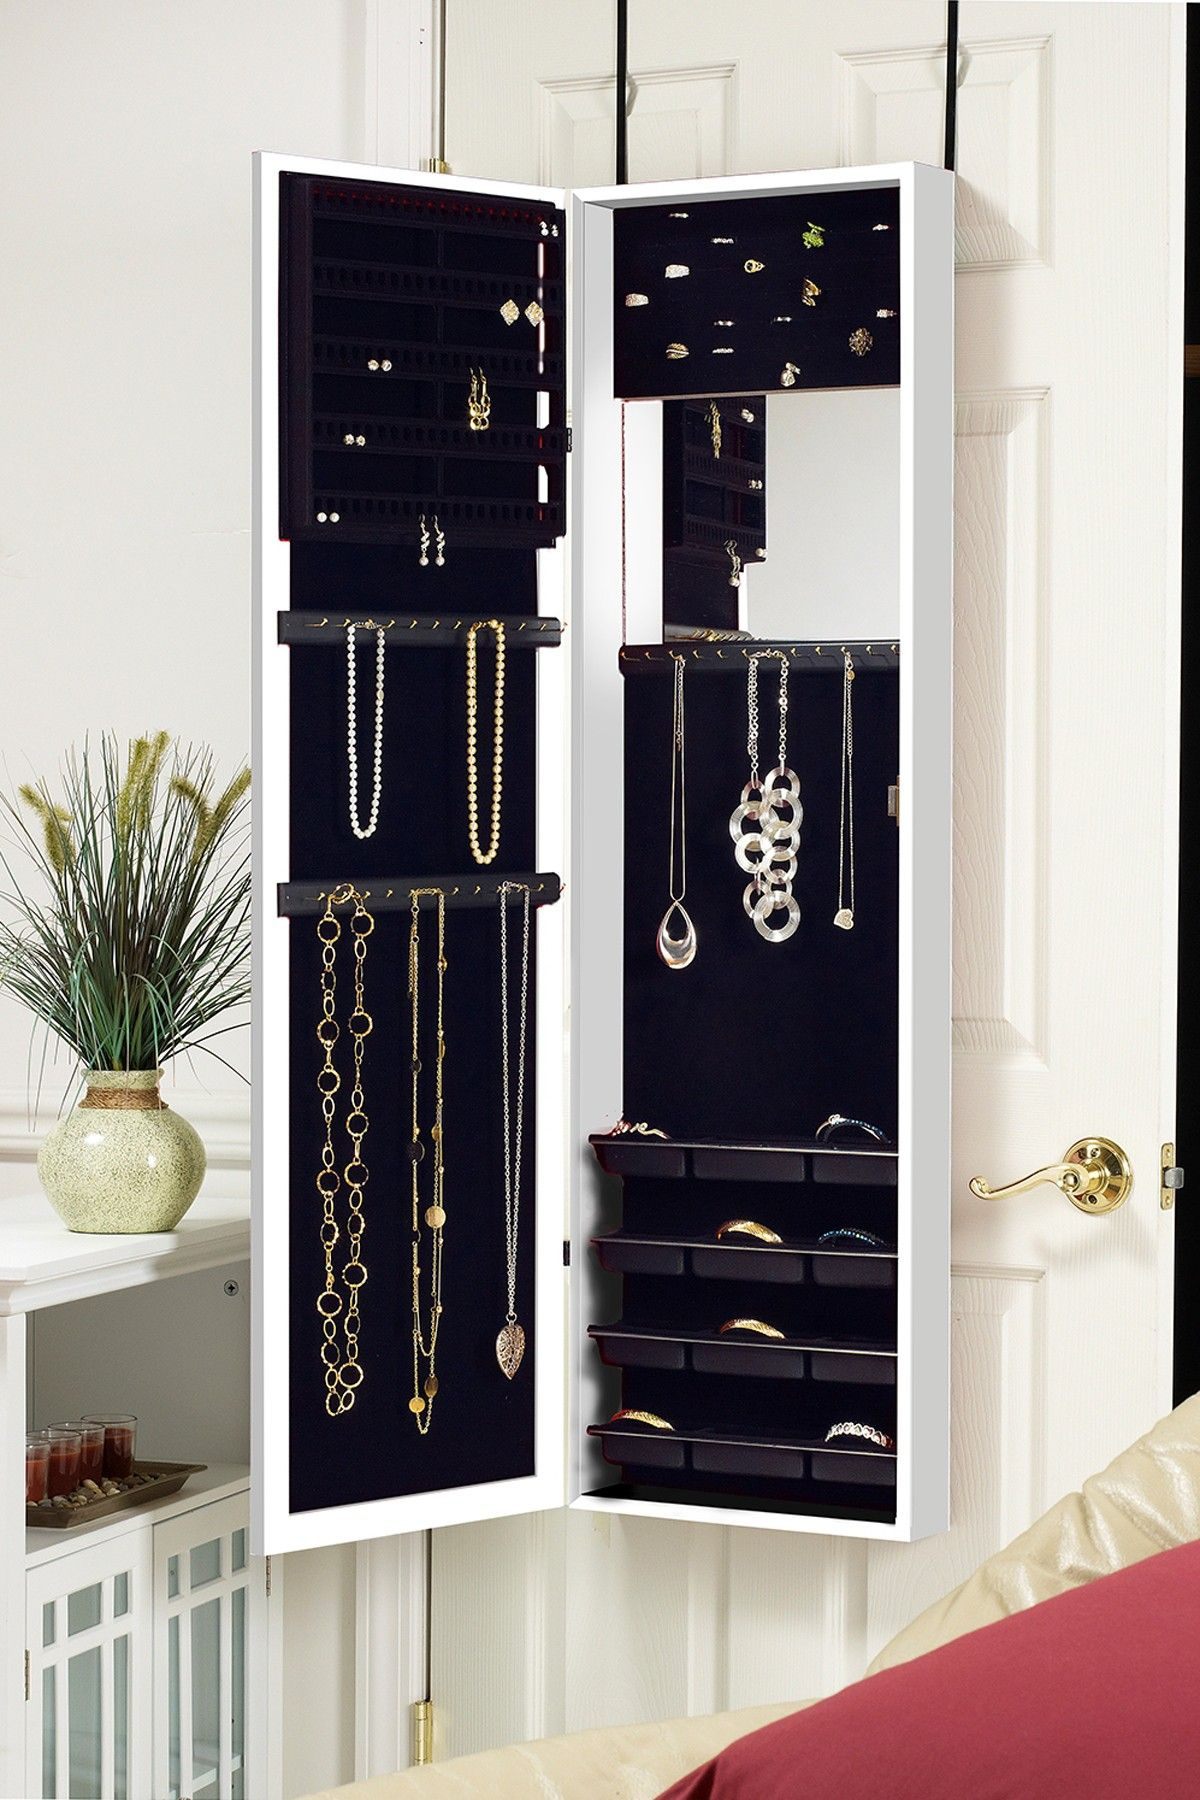 Over The Door Mirrored Jewelry Armoire White I Would Get This If It Was Not An Obvious Location For Thieves To Go Steal My Jewels